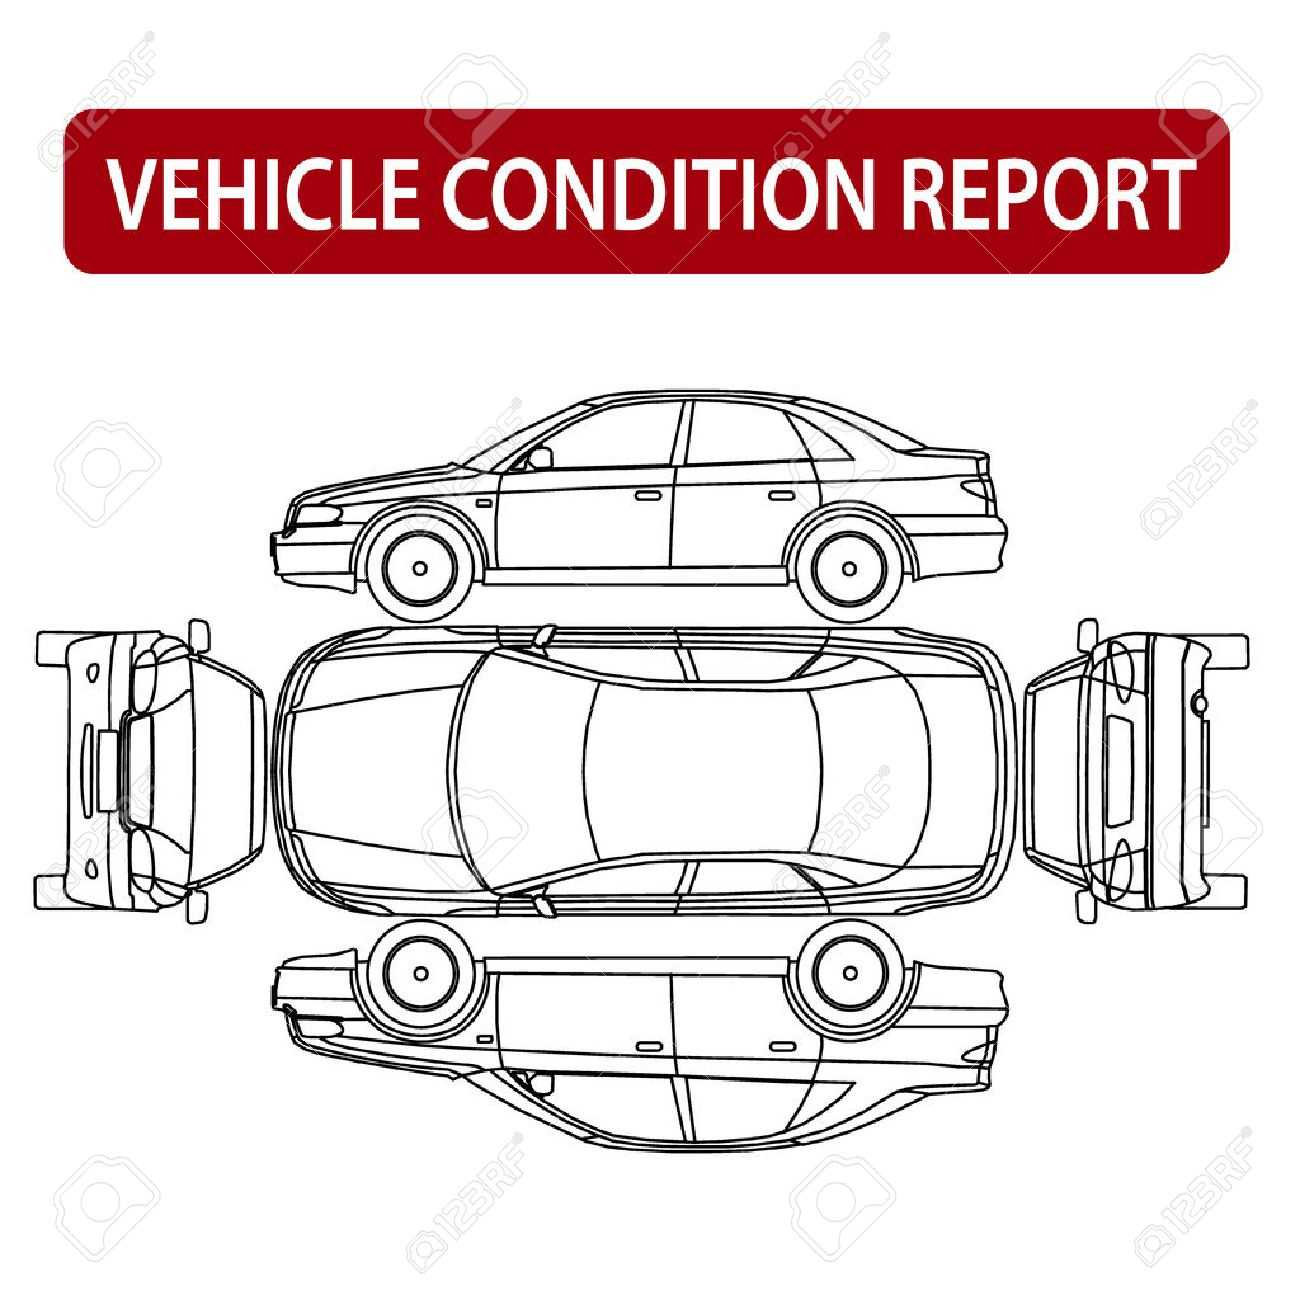 Vehicle Condition Report Car Checklist, Auto Damage Inspection with regard to Car Damage Report Template